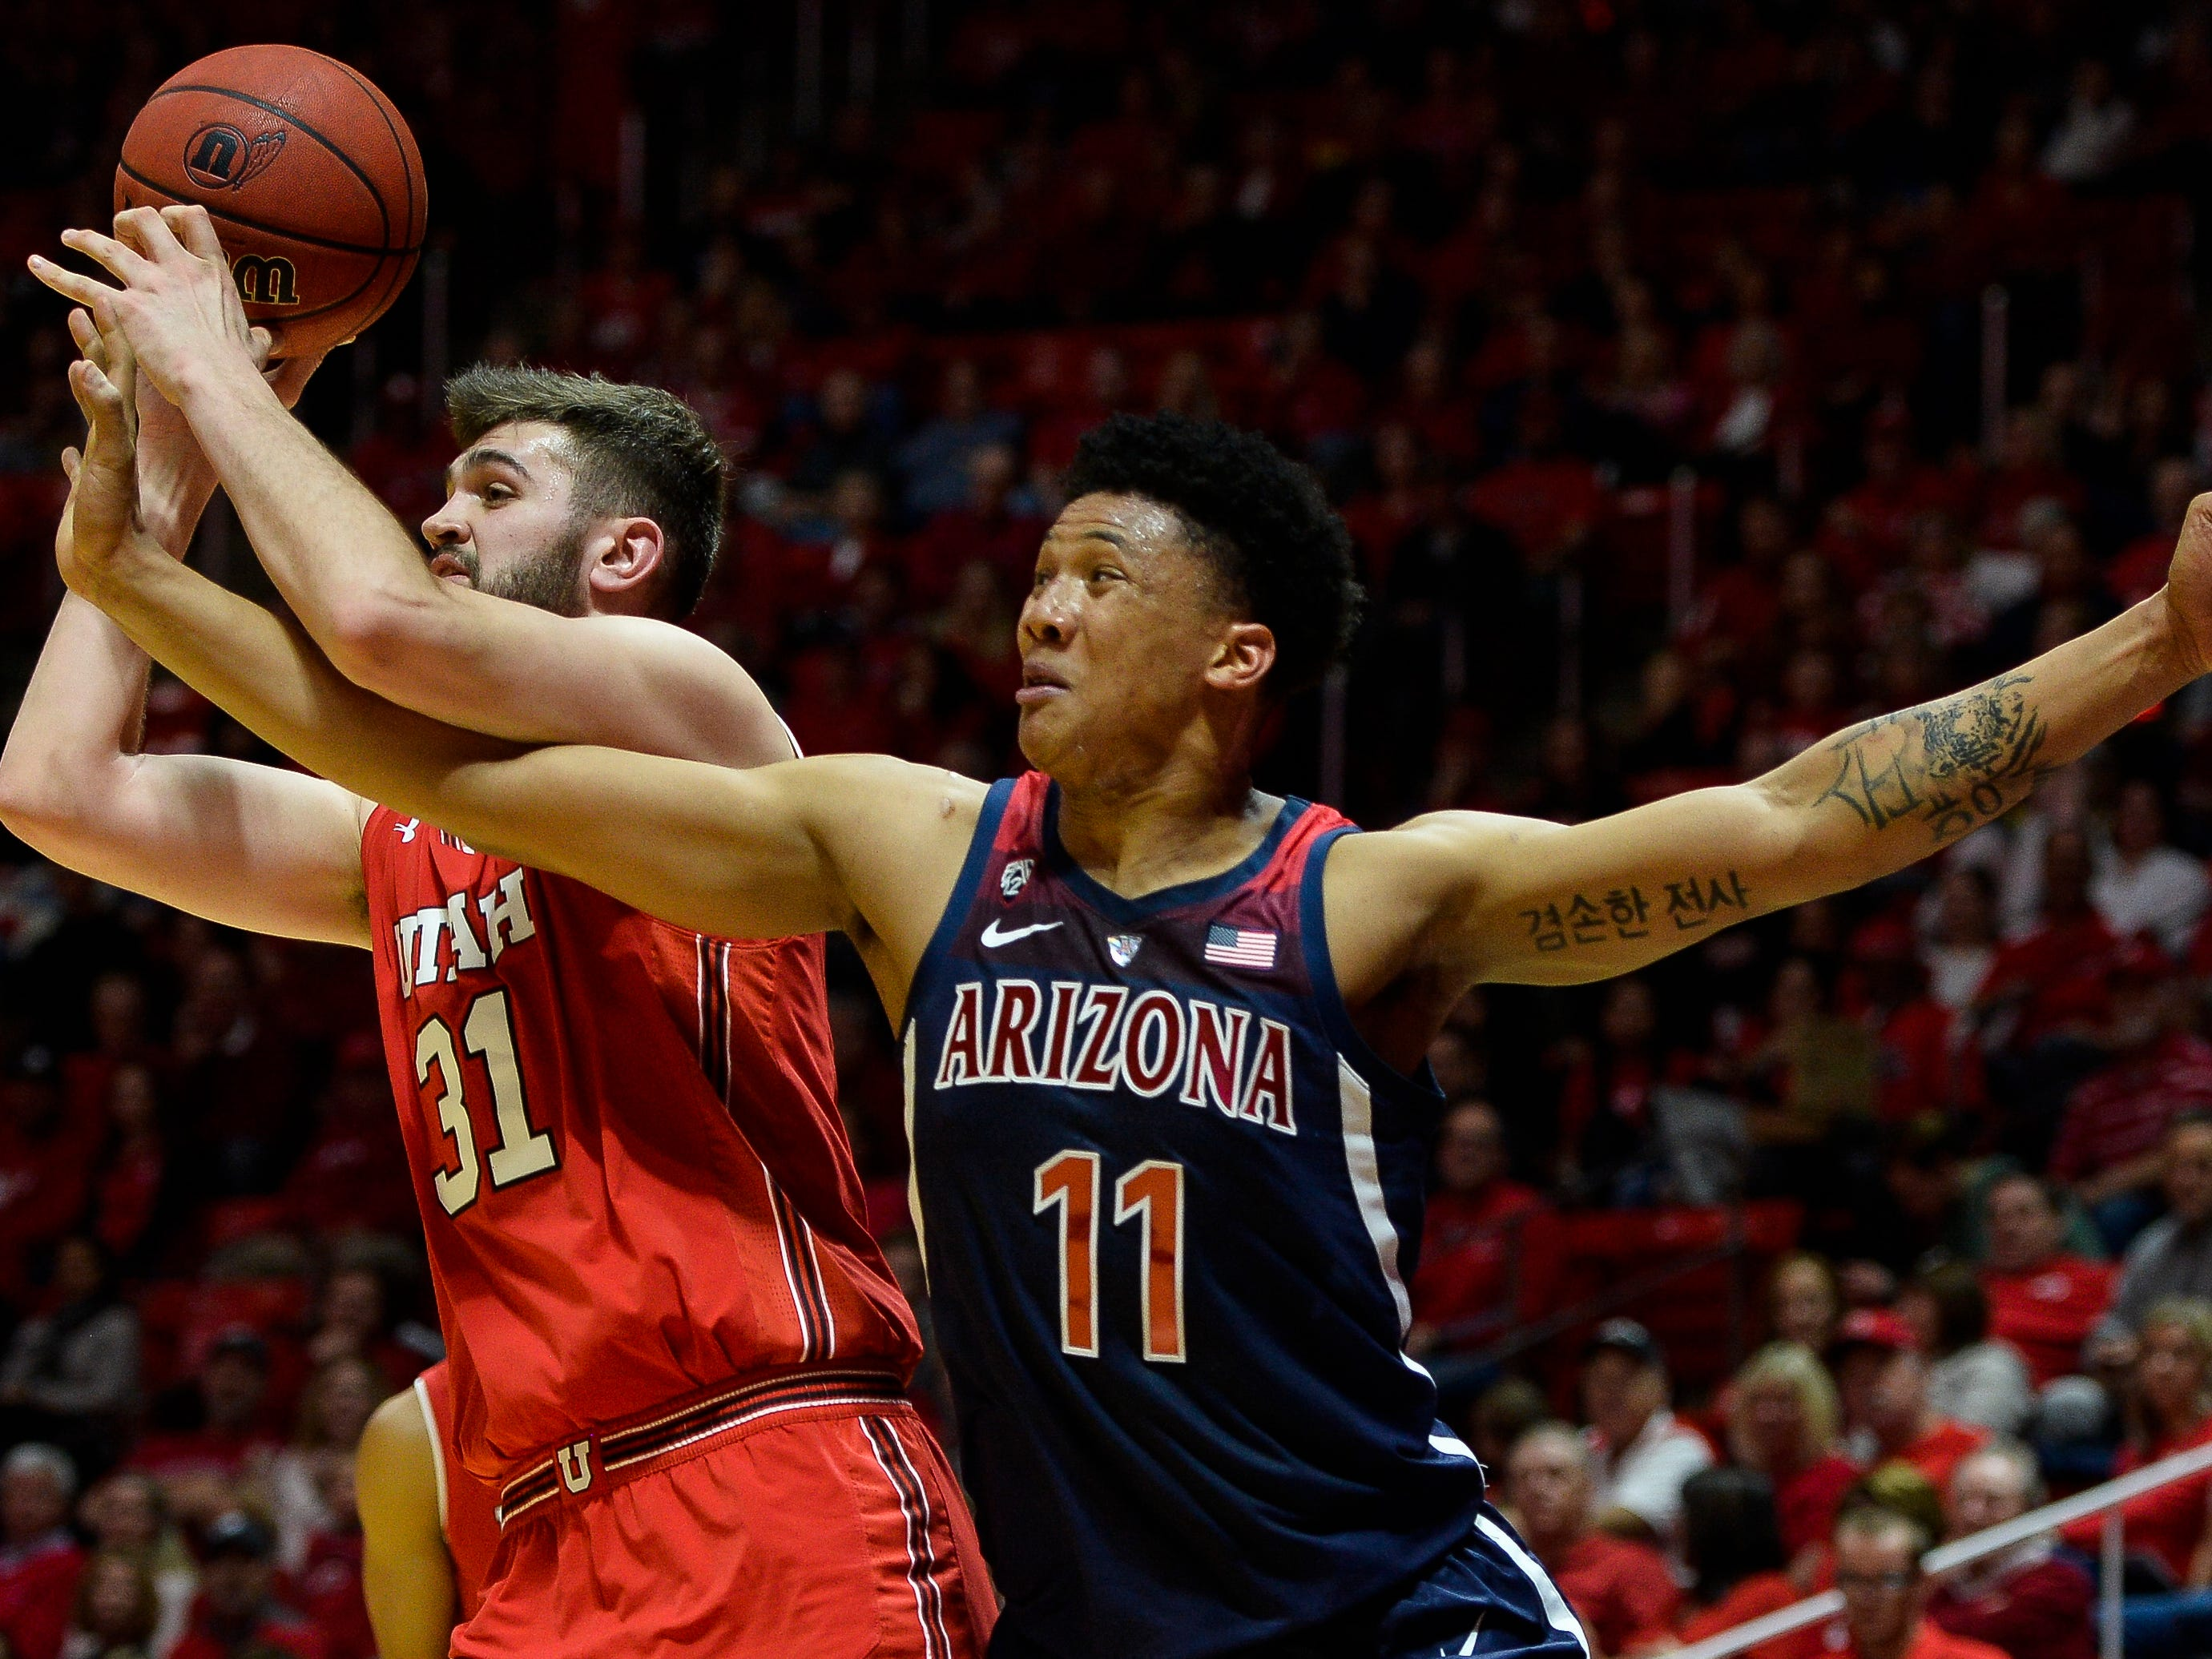 Utah center Brandon Morley (31) fights for the ball with Arizona forward Ira Lee (11) during the first half of an NCAA college basketball game Thursday, Feb. 14, 2019, in Salt Lake City.